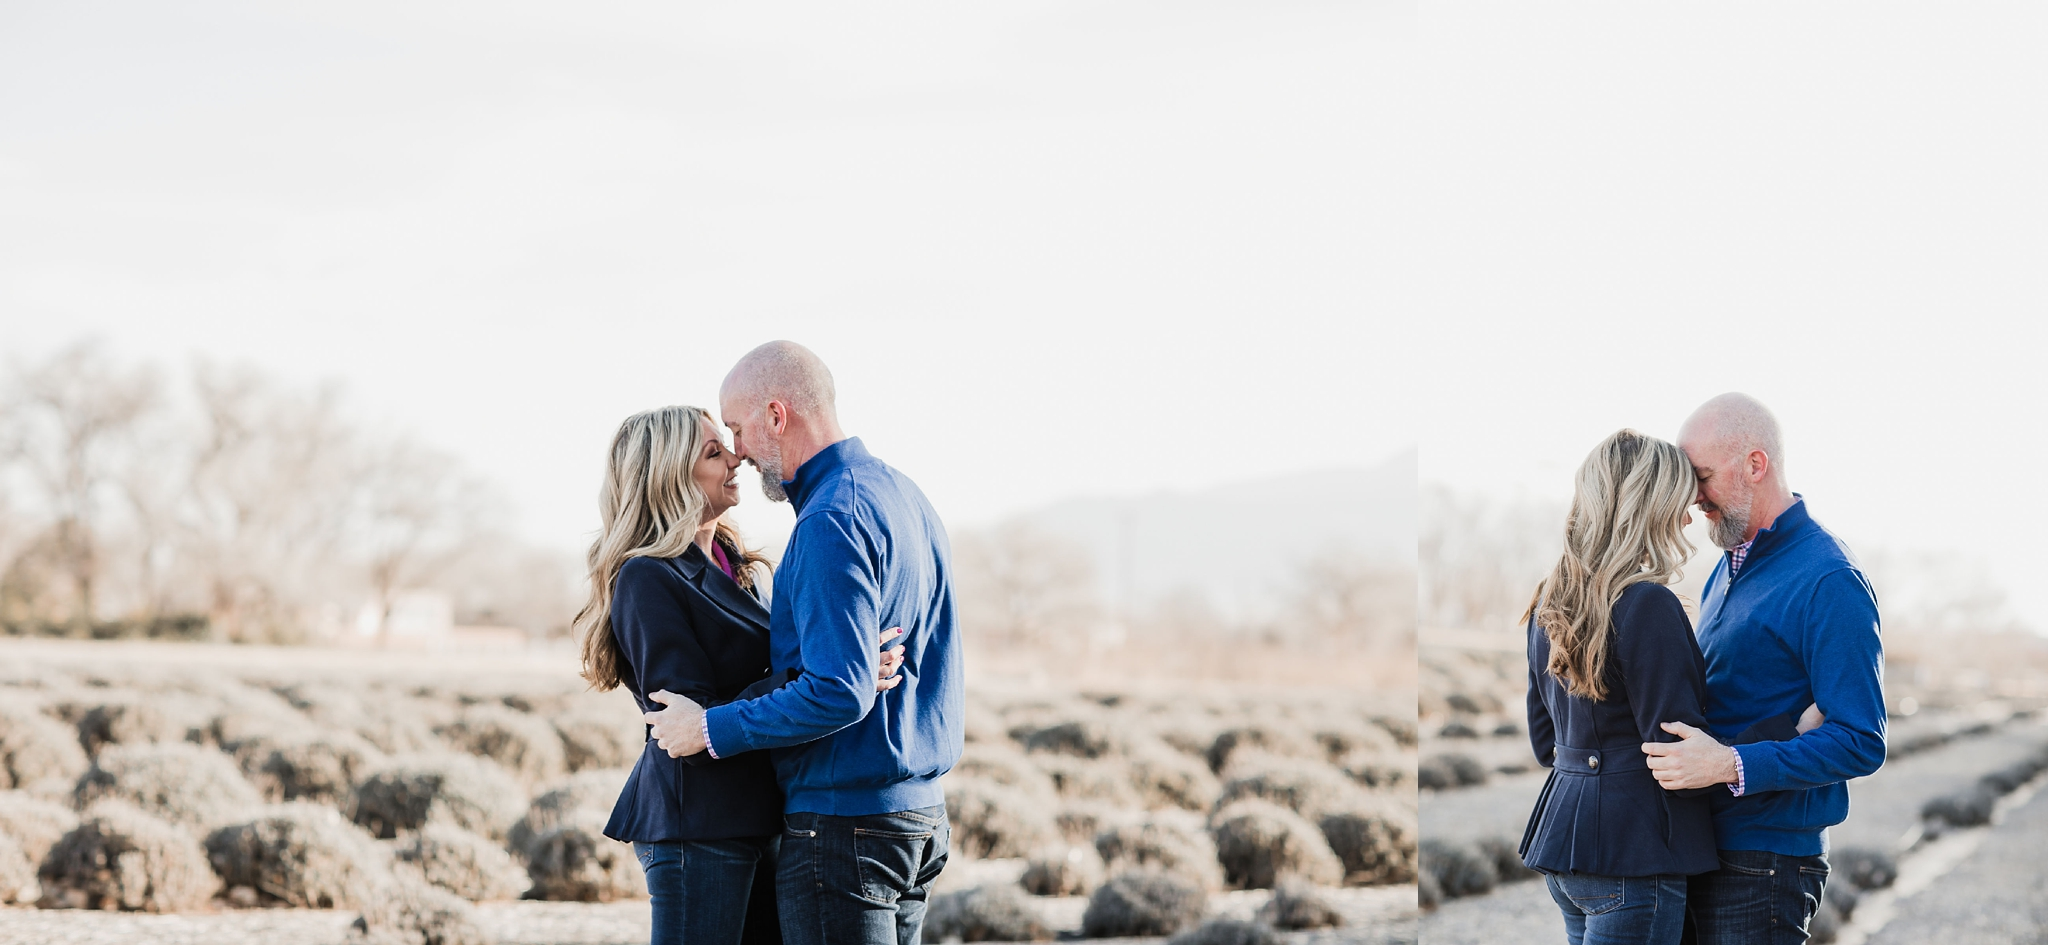 Alicia+lucia+photography+-+albuquerque+wedding+photographer+-+santa+fe+wedding+photography+-+new+mexico+wedding+photographer+-+new+mexico+engagement+-+los+poblanos+engagement_0002.jpg